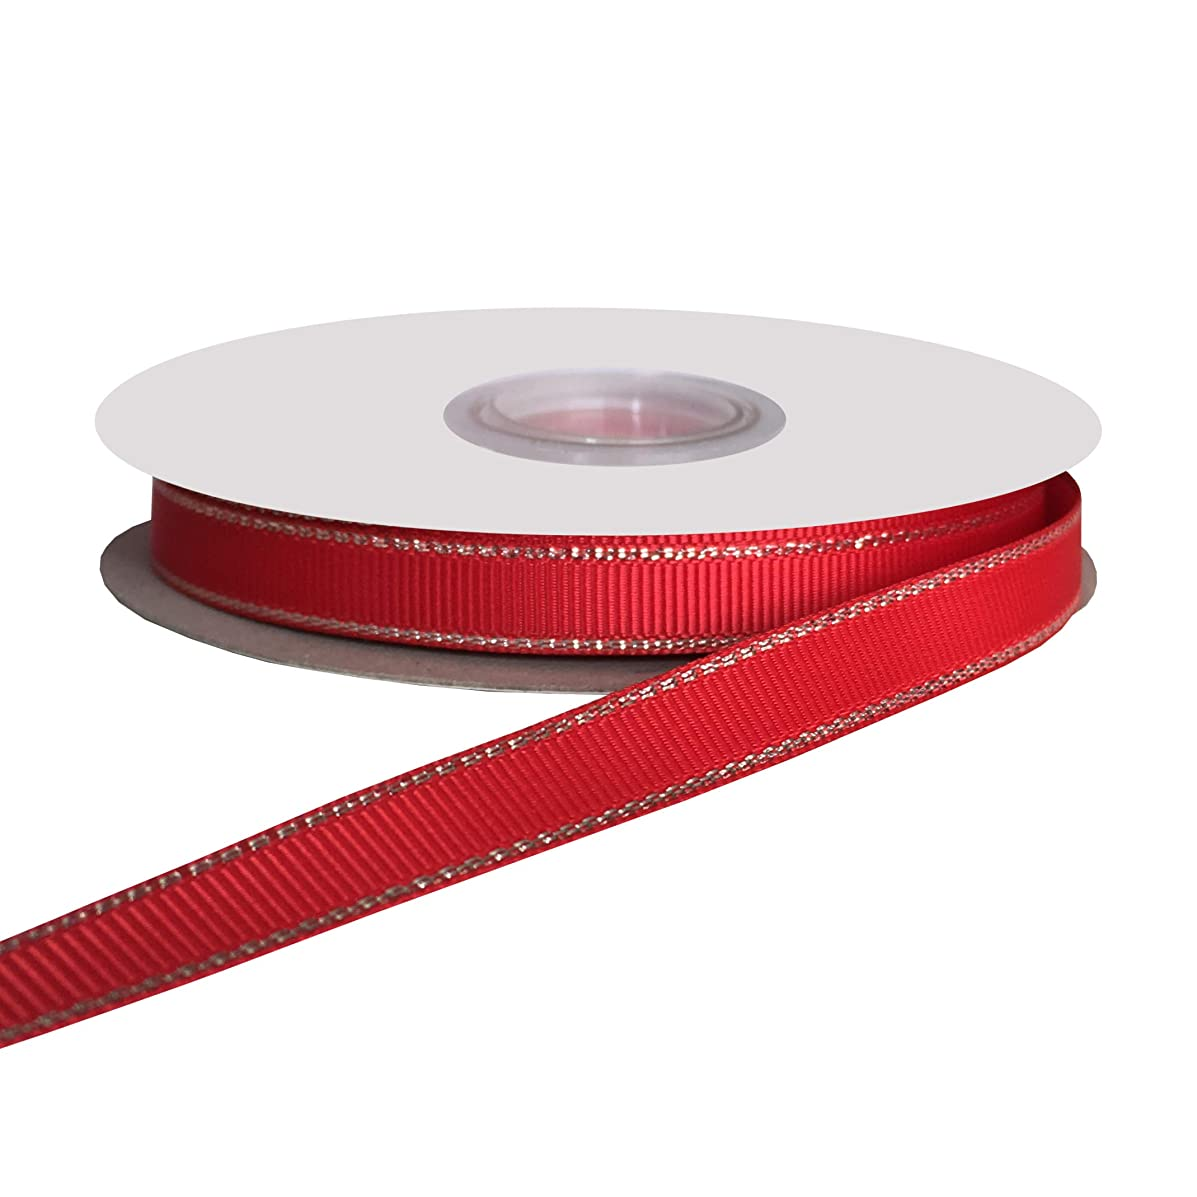 DUOQU 3/8 inch Wide Silver Metallic-Edge Grosgrain Ribbon 25 Yards Roll Red